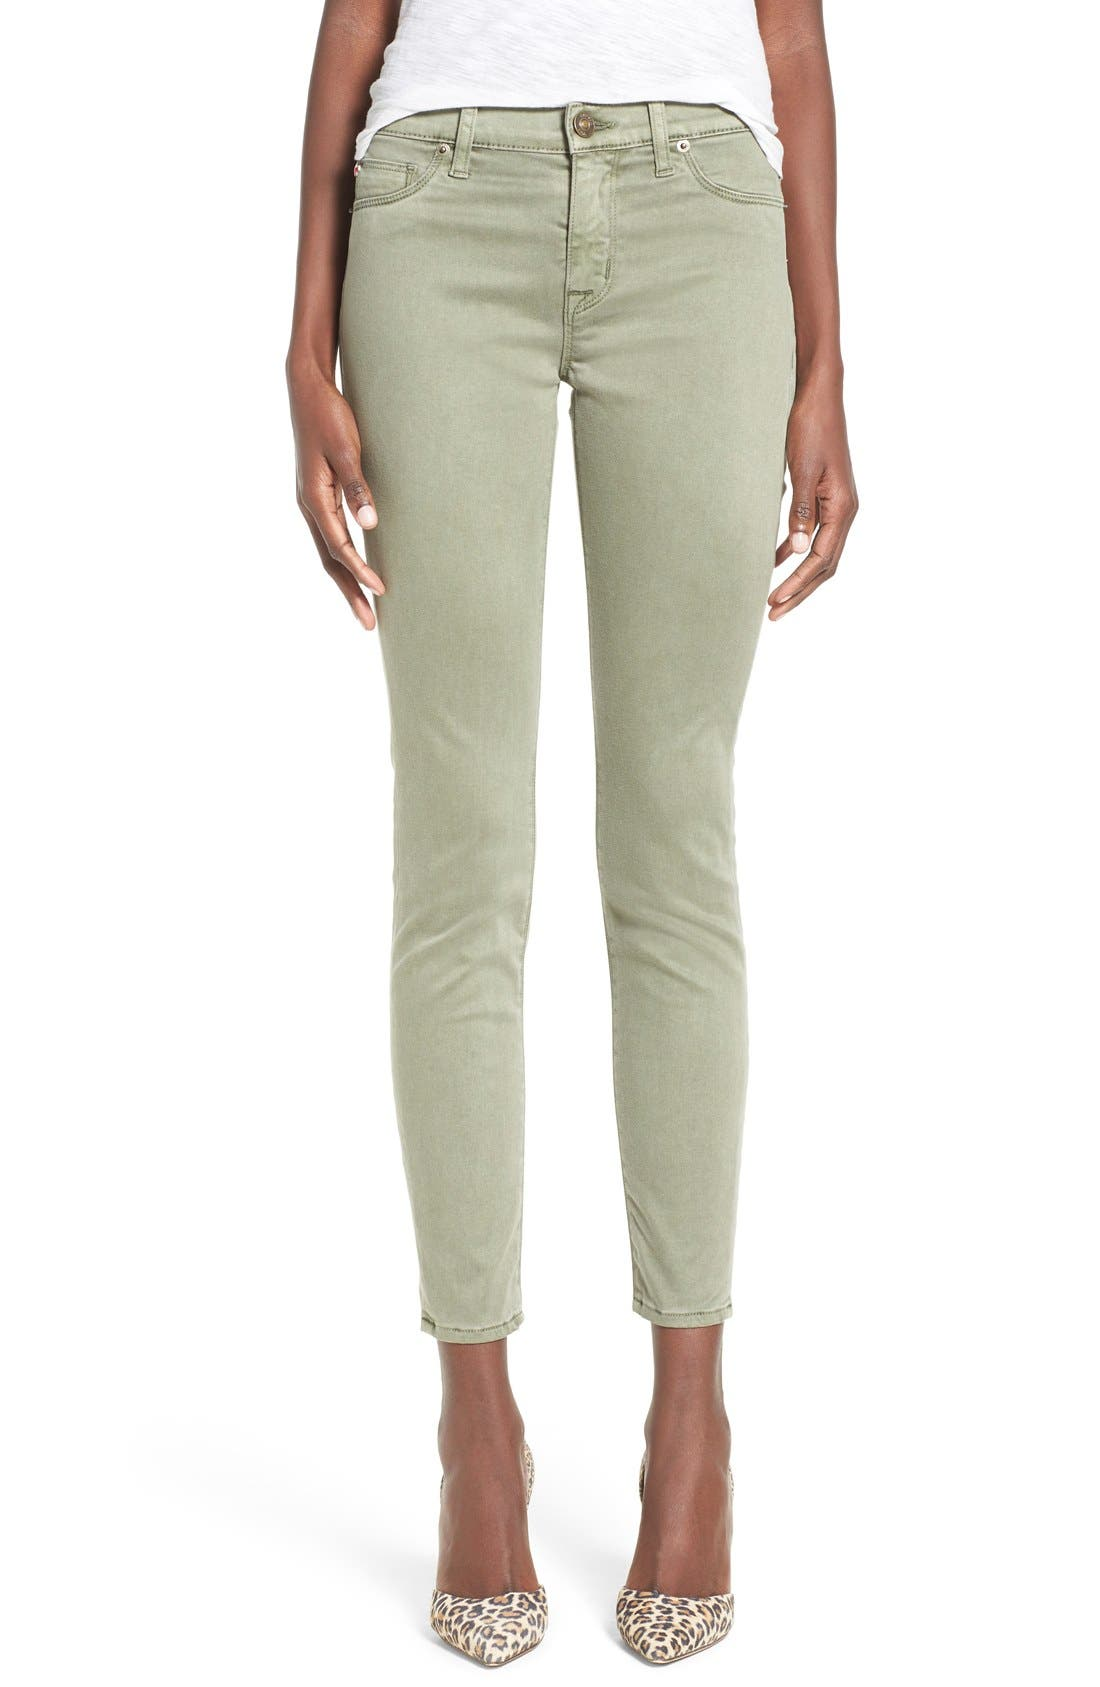 Main Image - Hudson Jeans 'Nico' Ankle Super Skinny Jeans (Earth Works)